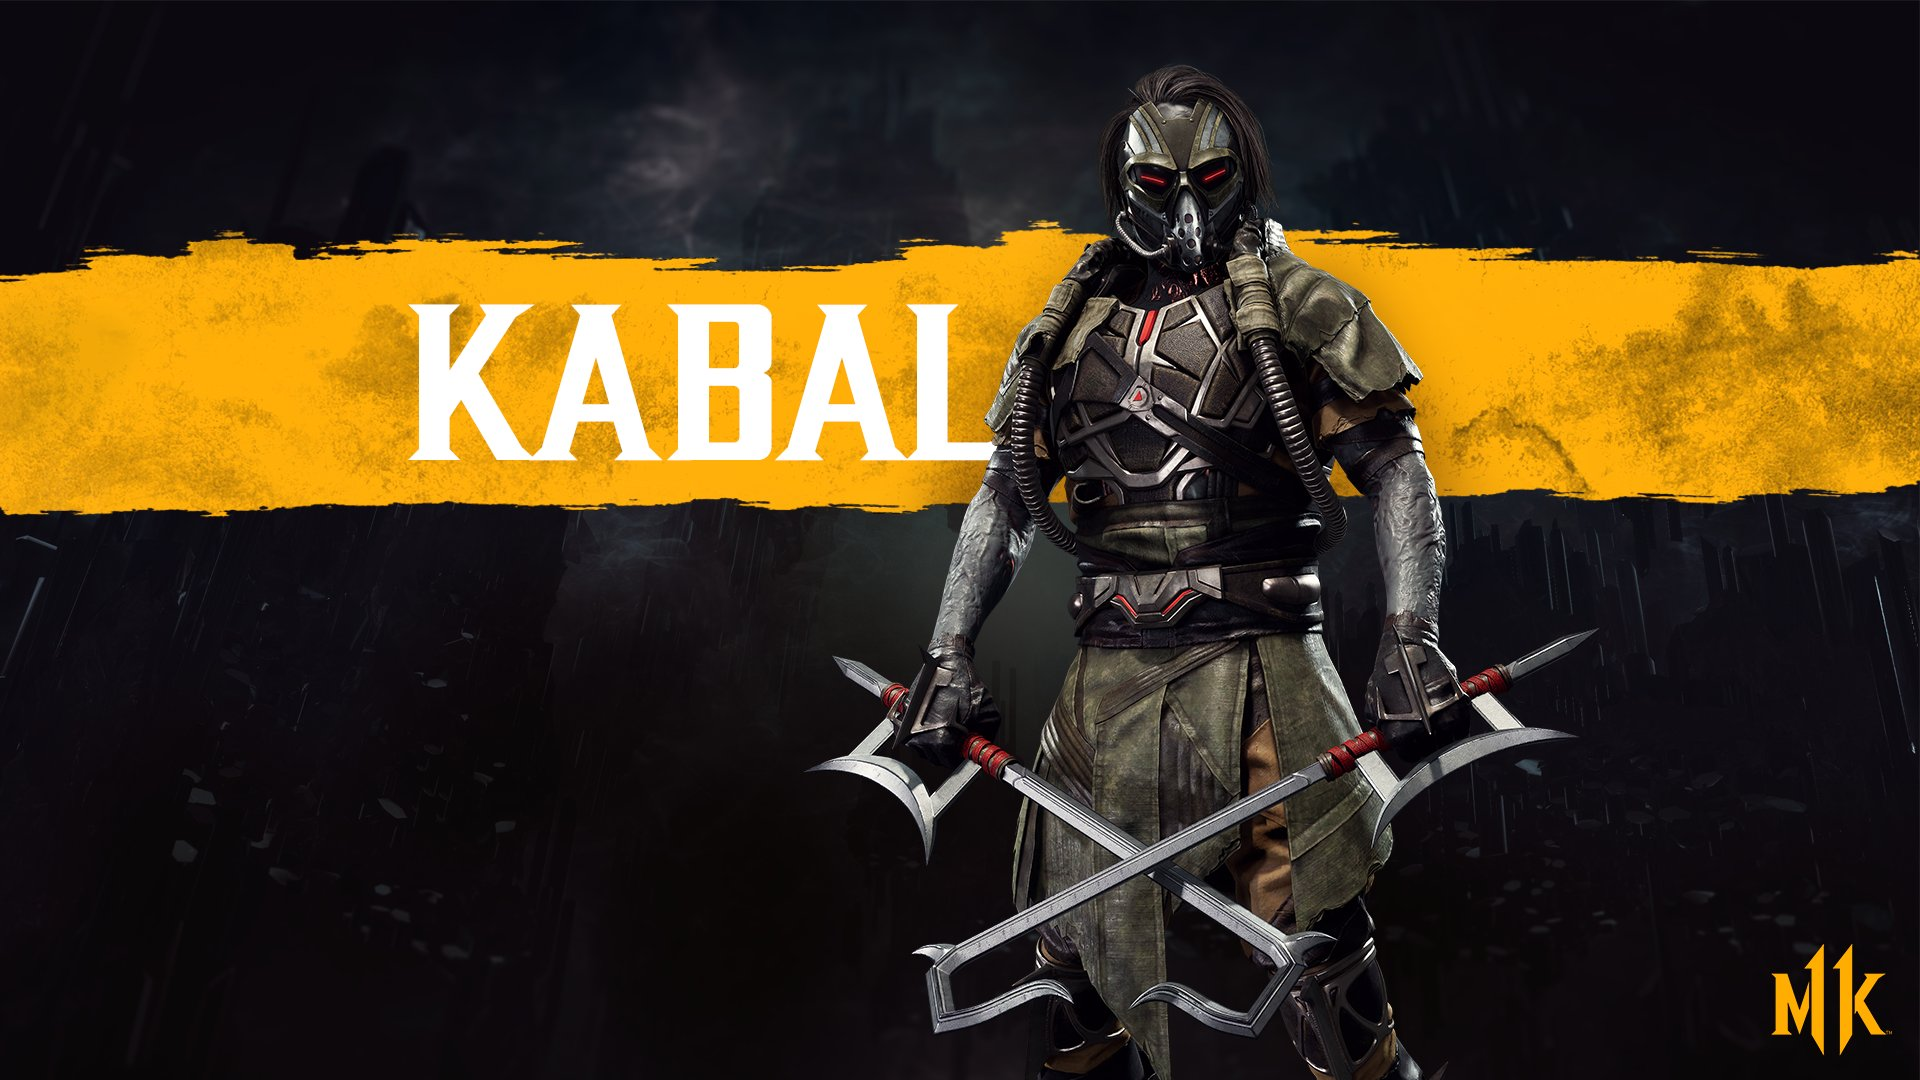 Mortal Kombat 11 wallpaper - Kabal